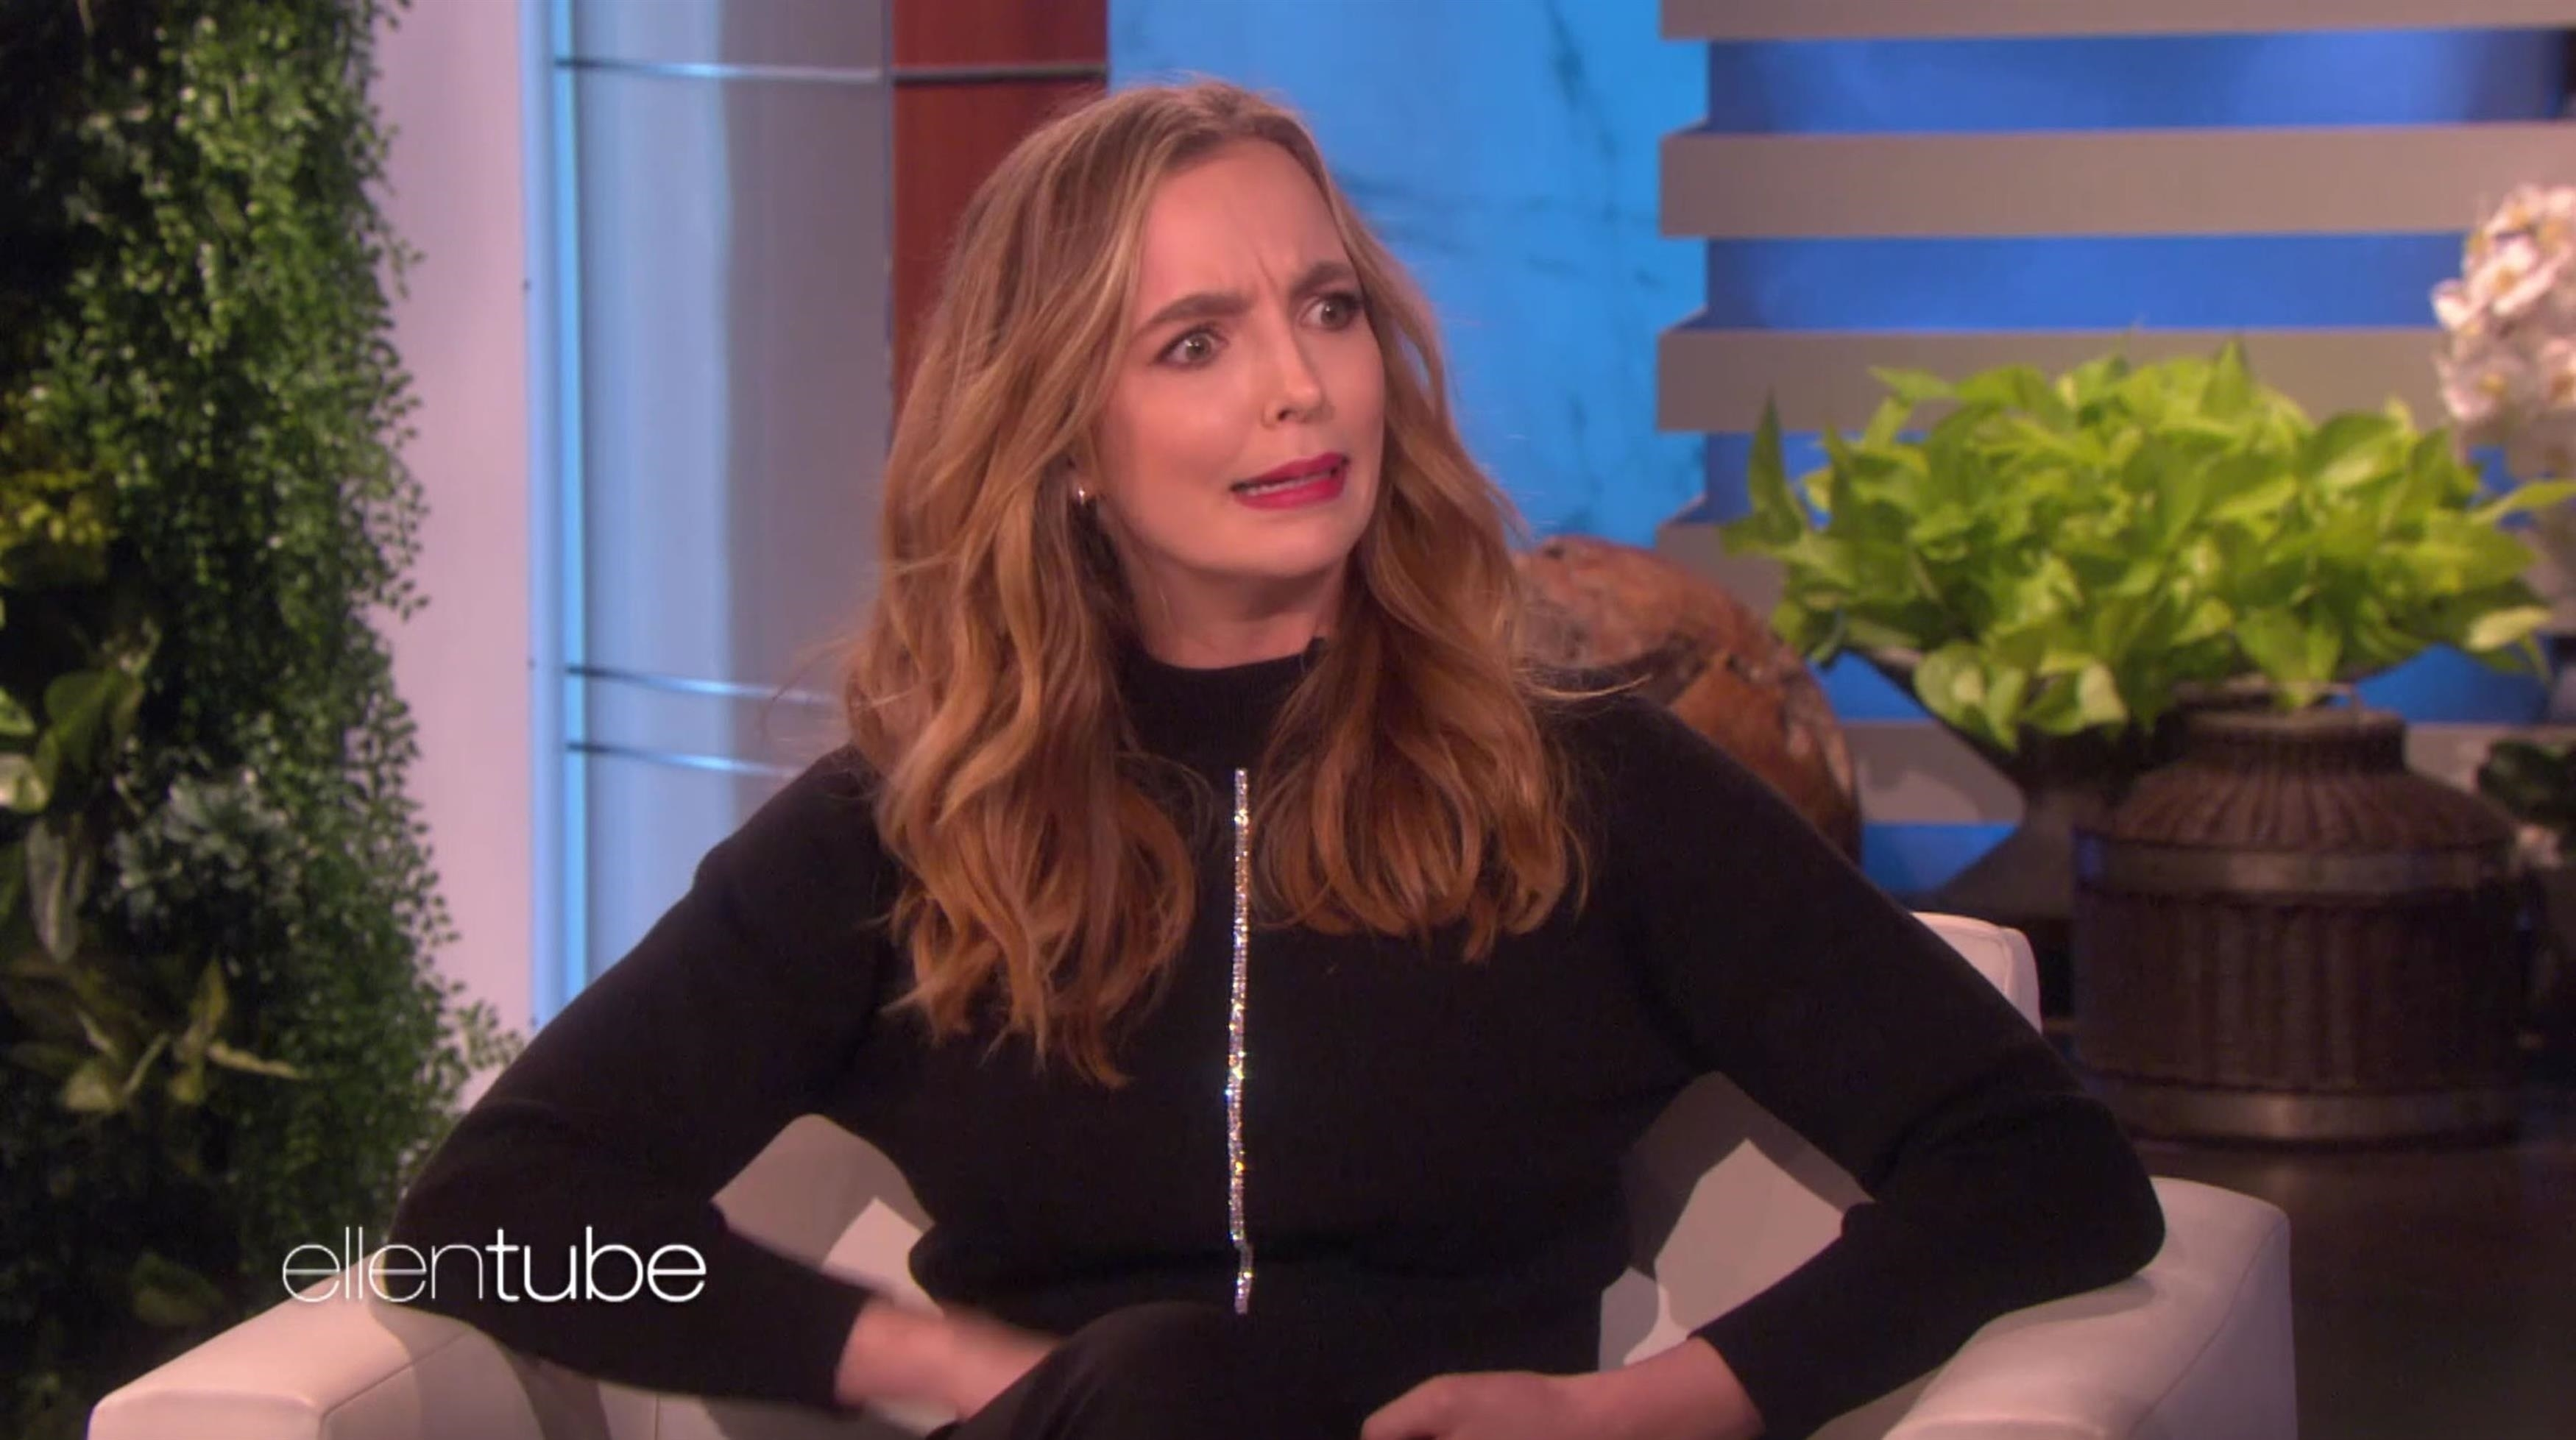 Killing Eve star Jodie Comer's accent accidentally mocked by Ellen DeGeneres in awkward mishap